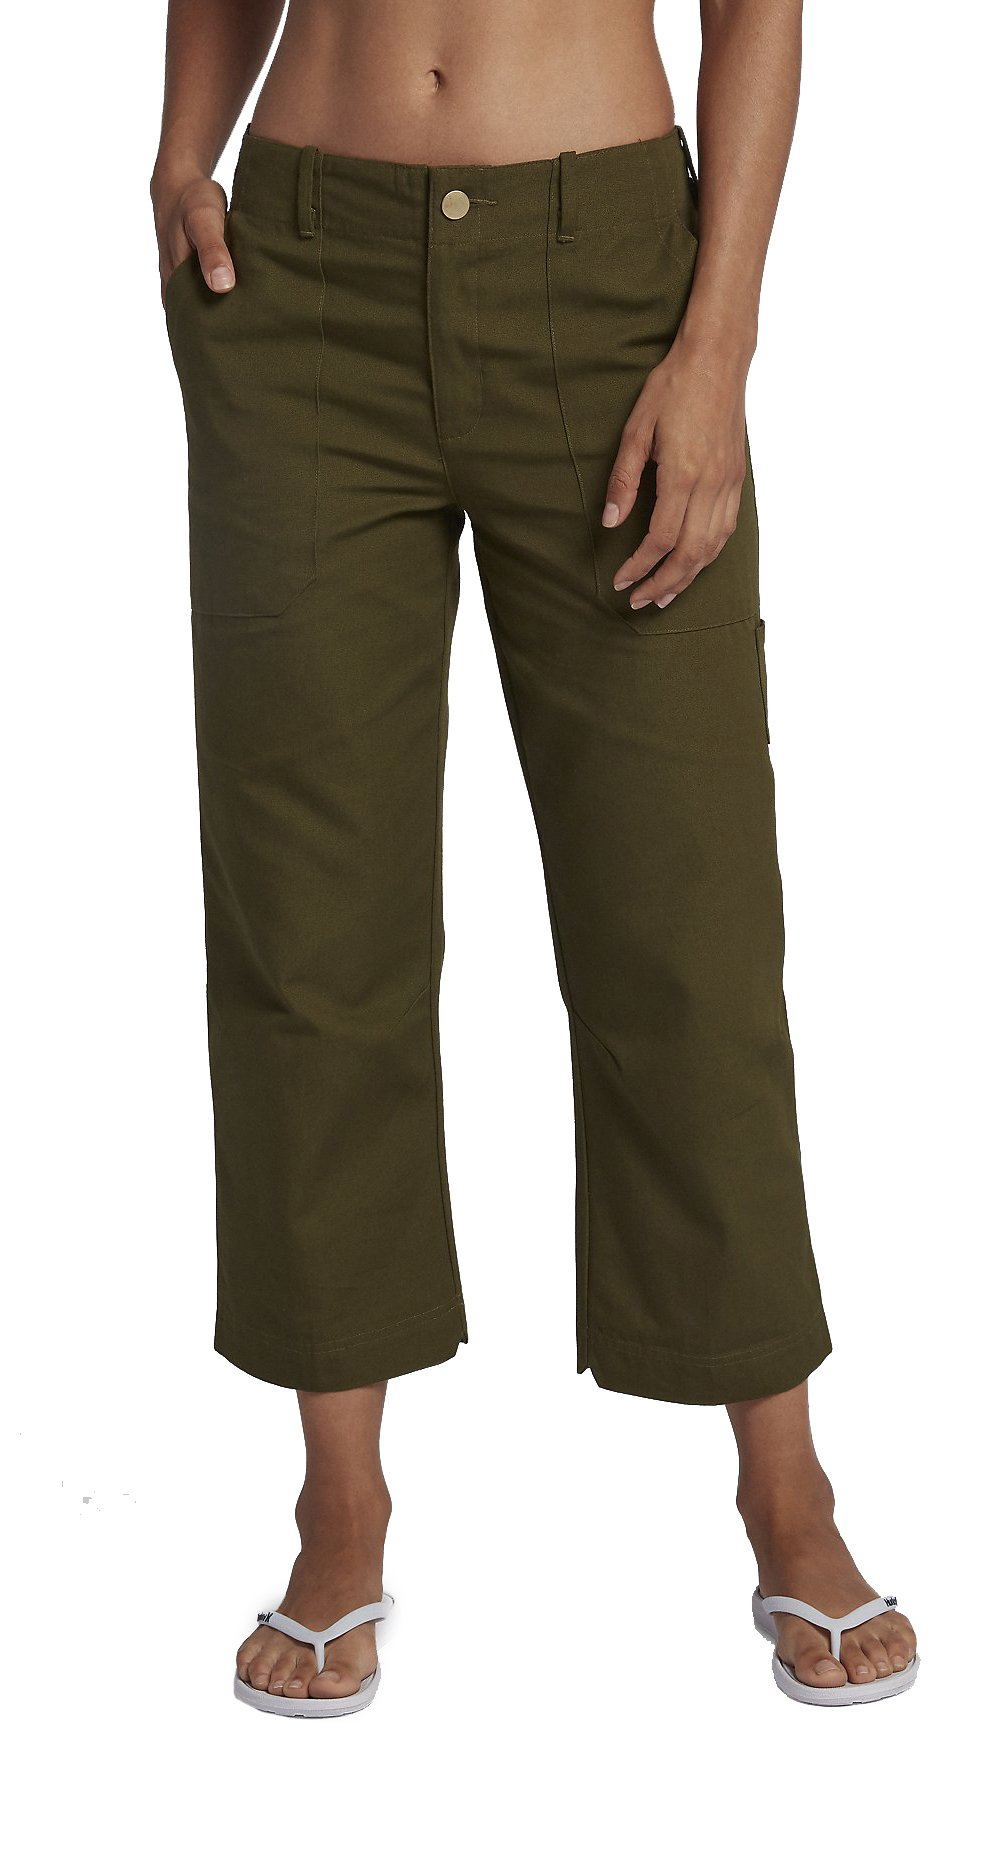 Hurley Women's AJ3564 Lowrider Wide Leg Pant, Olive Canvas - 9